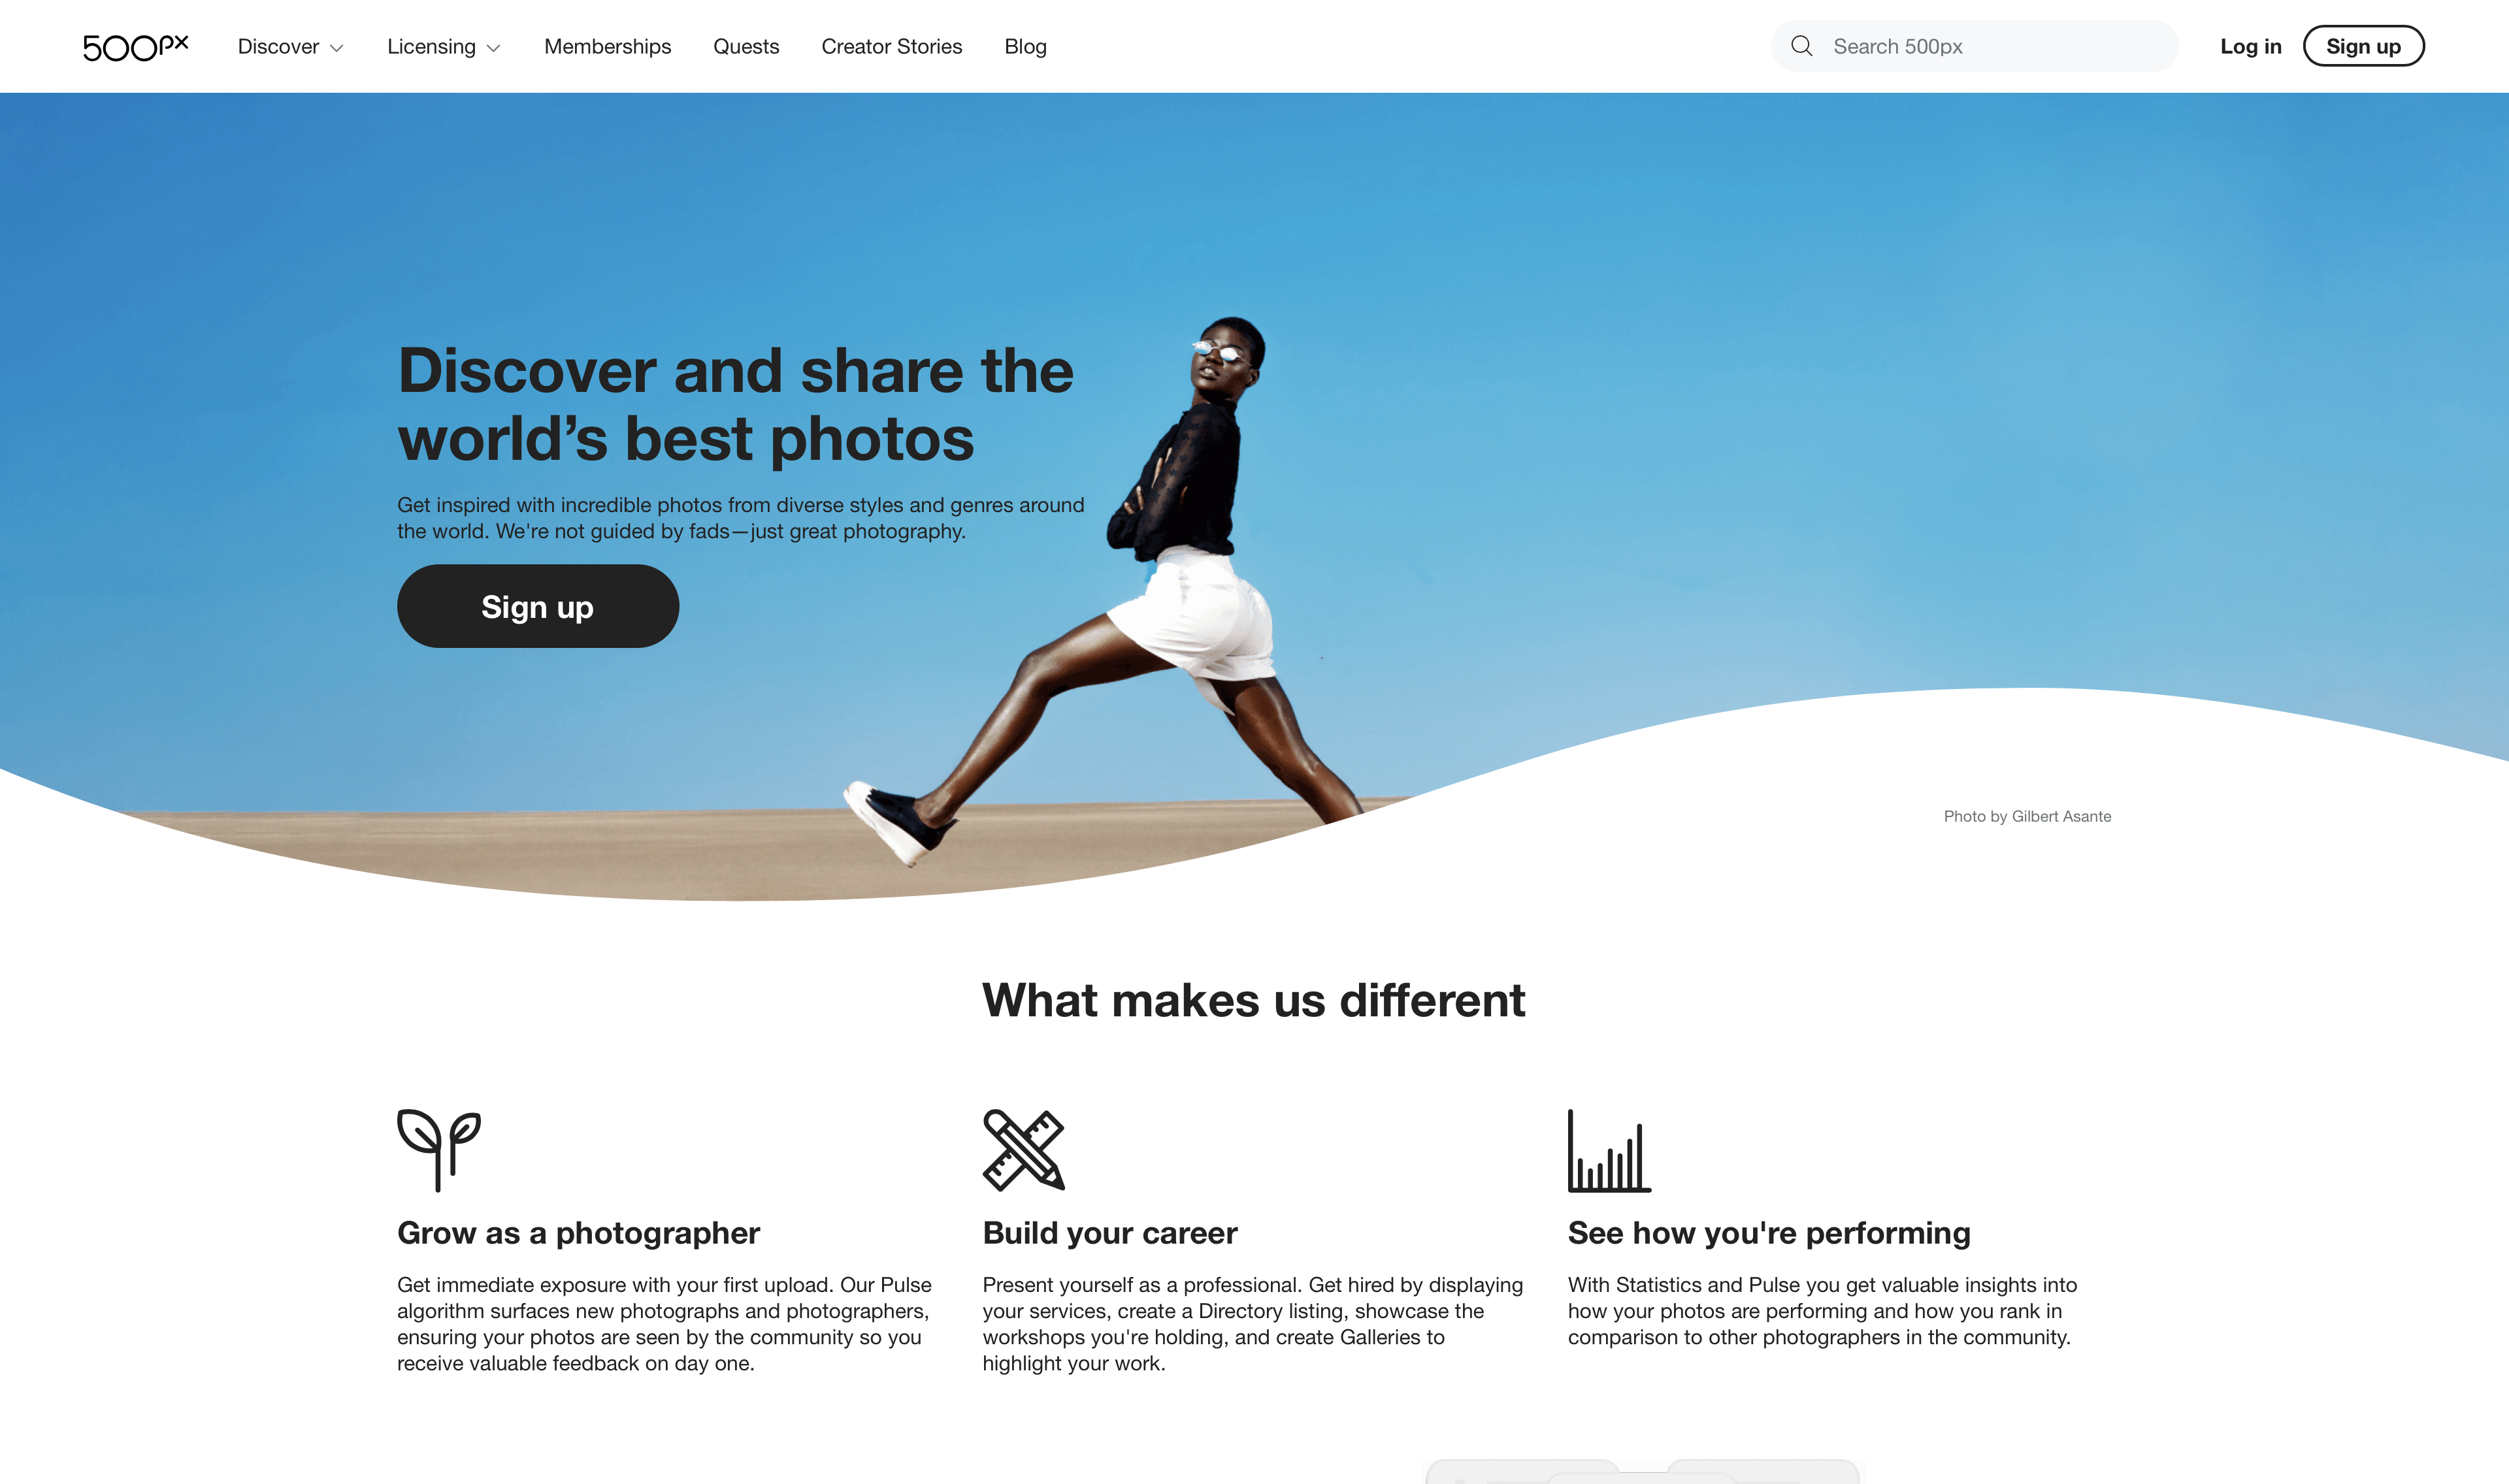 Sell your photos online with 500px